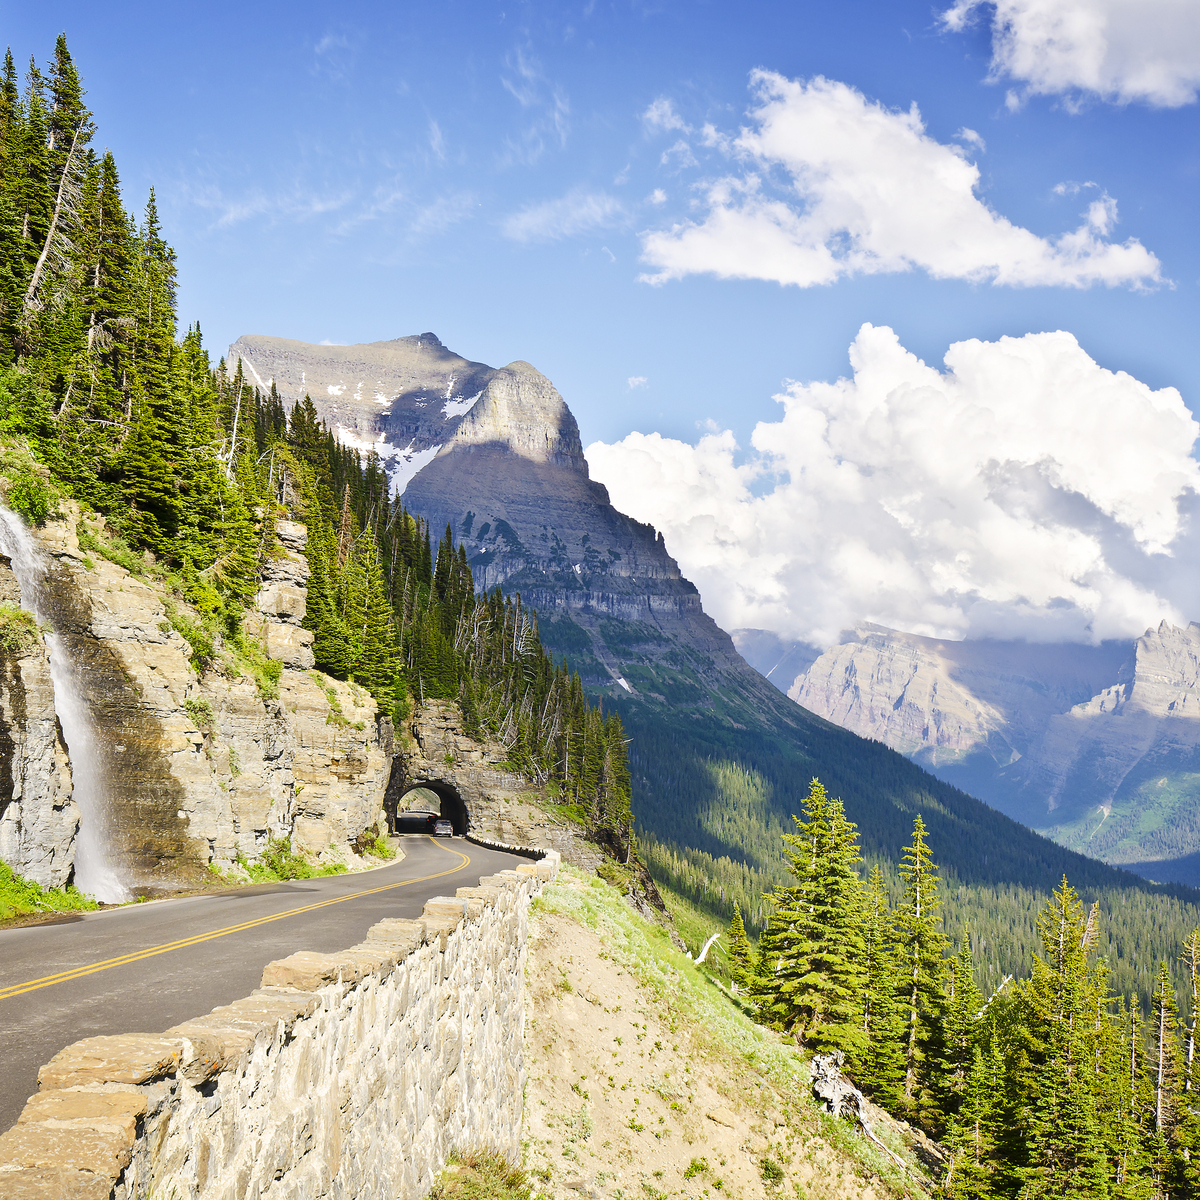 A view from Going to the Sun Road at Glacier National Park